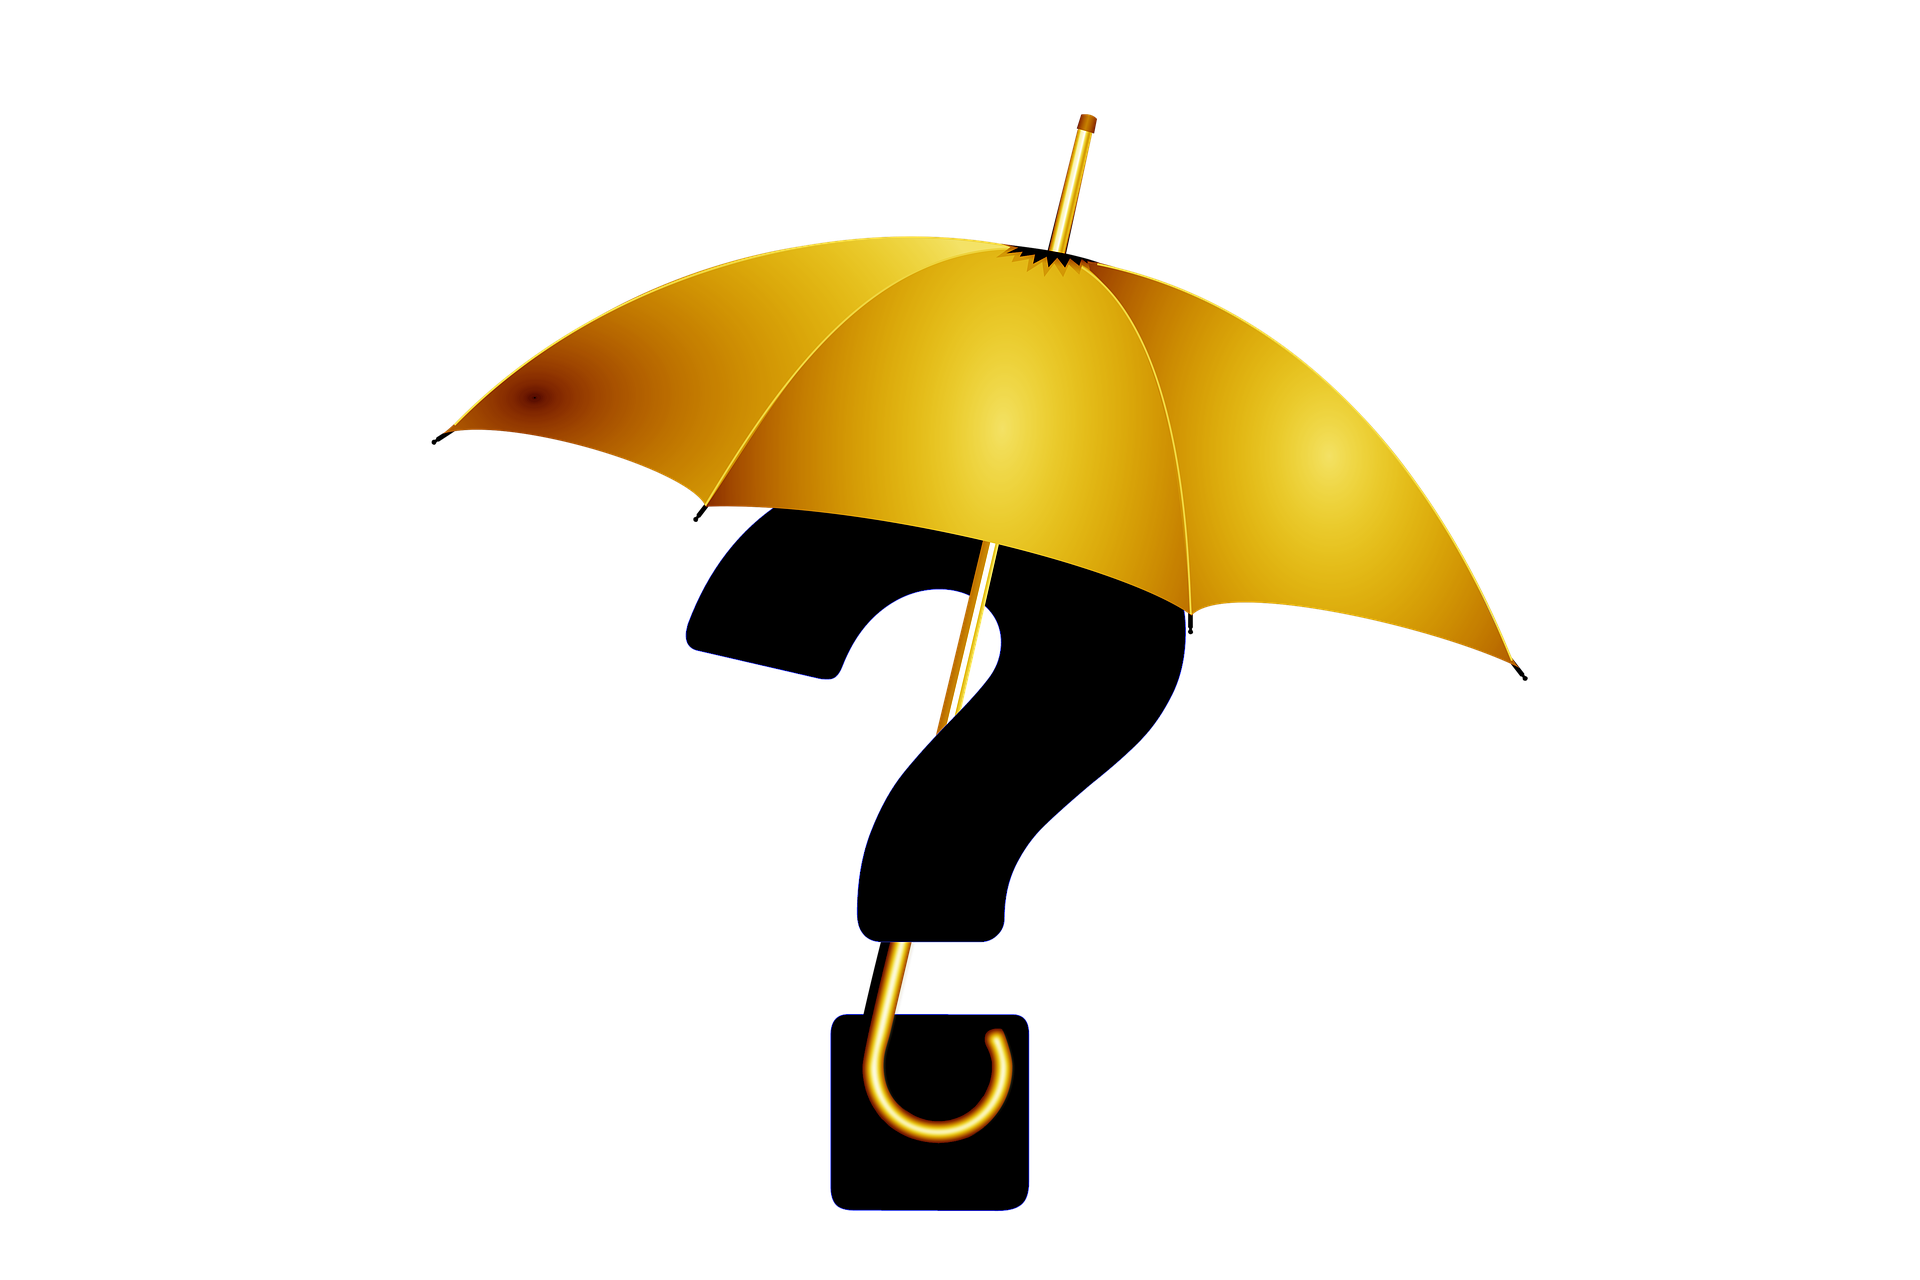 Question Mark with Umbrella